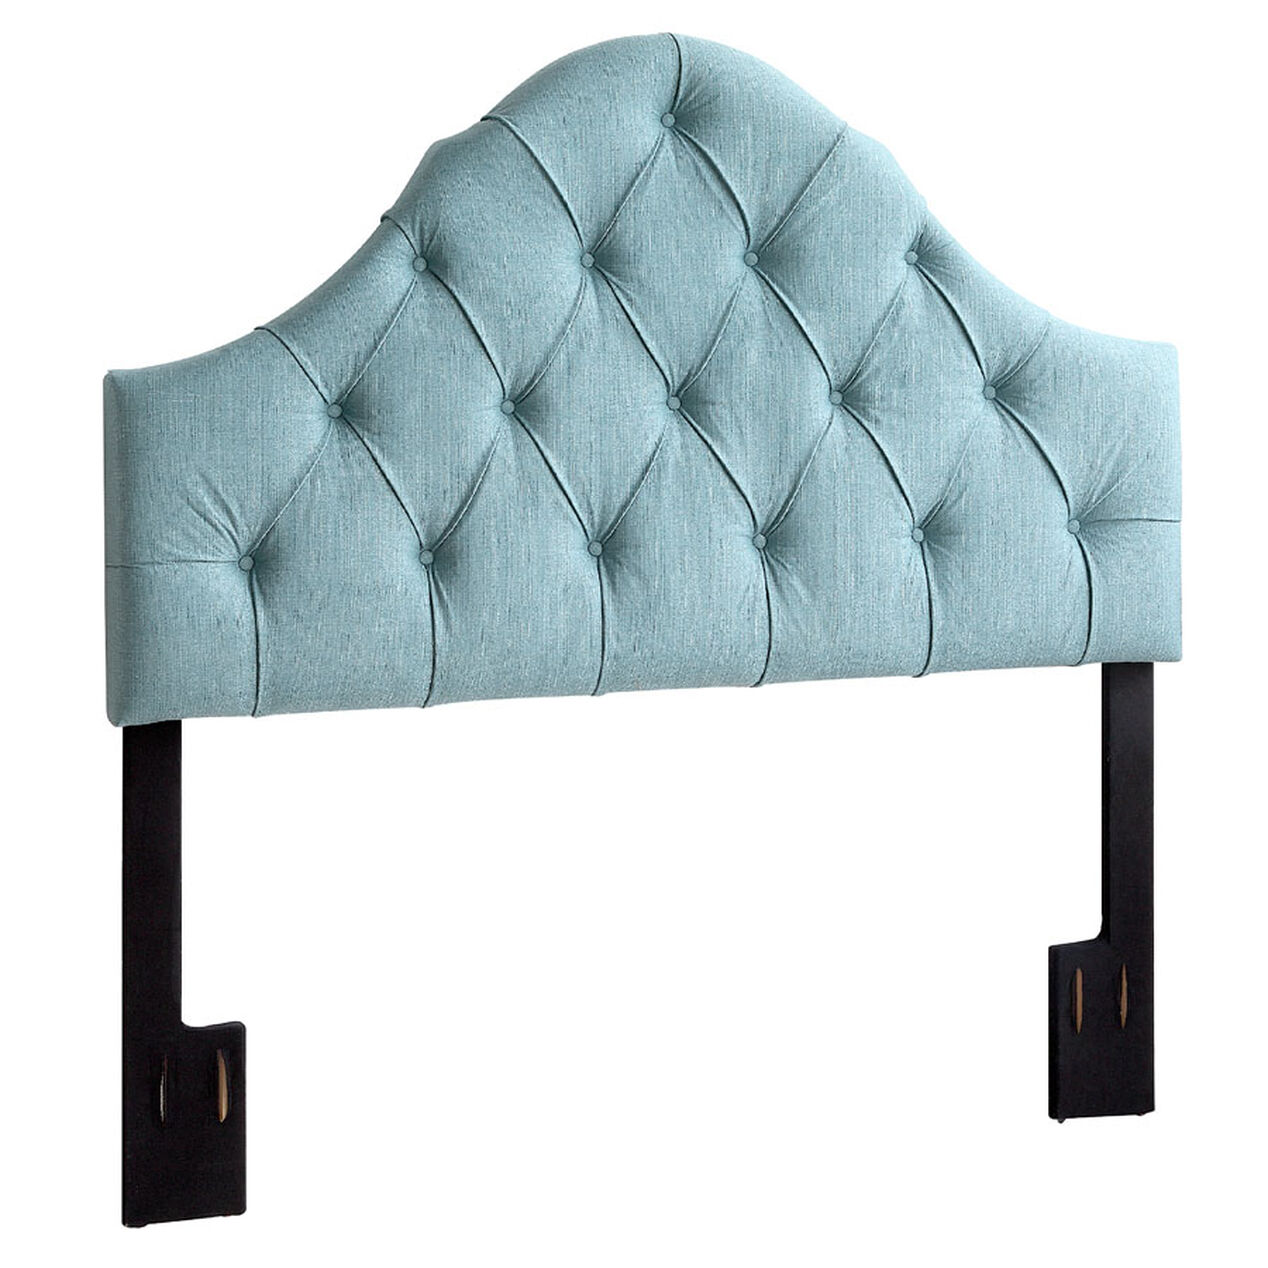 Picture of Tuxedo Full Queen Headboard  Seafoam. Bedroom Furniture   Beds  Nightstands and Dressers   At Home Stores